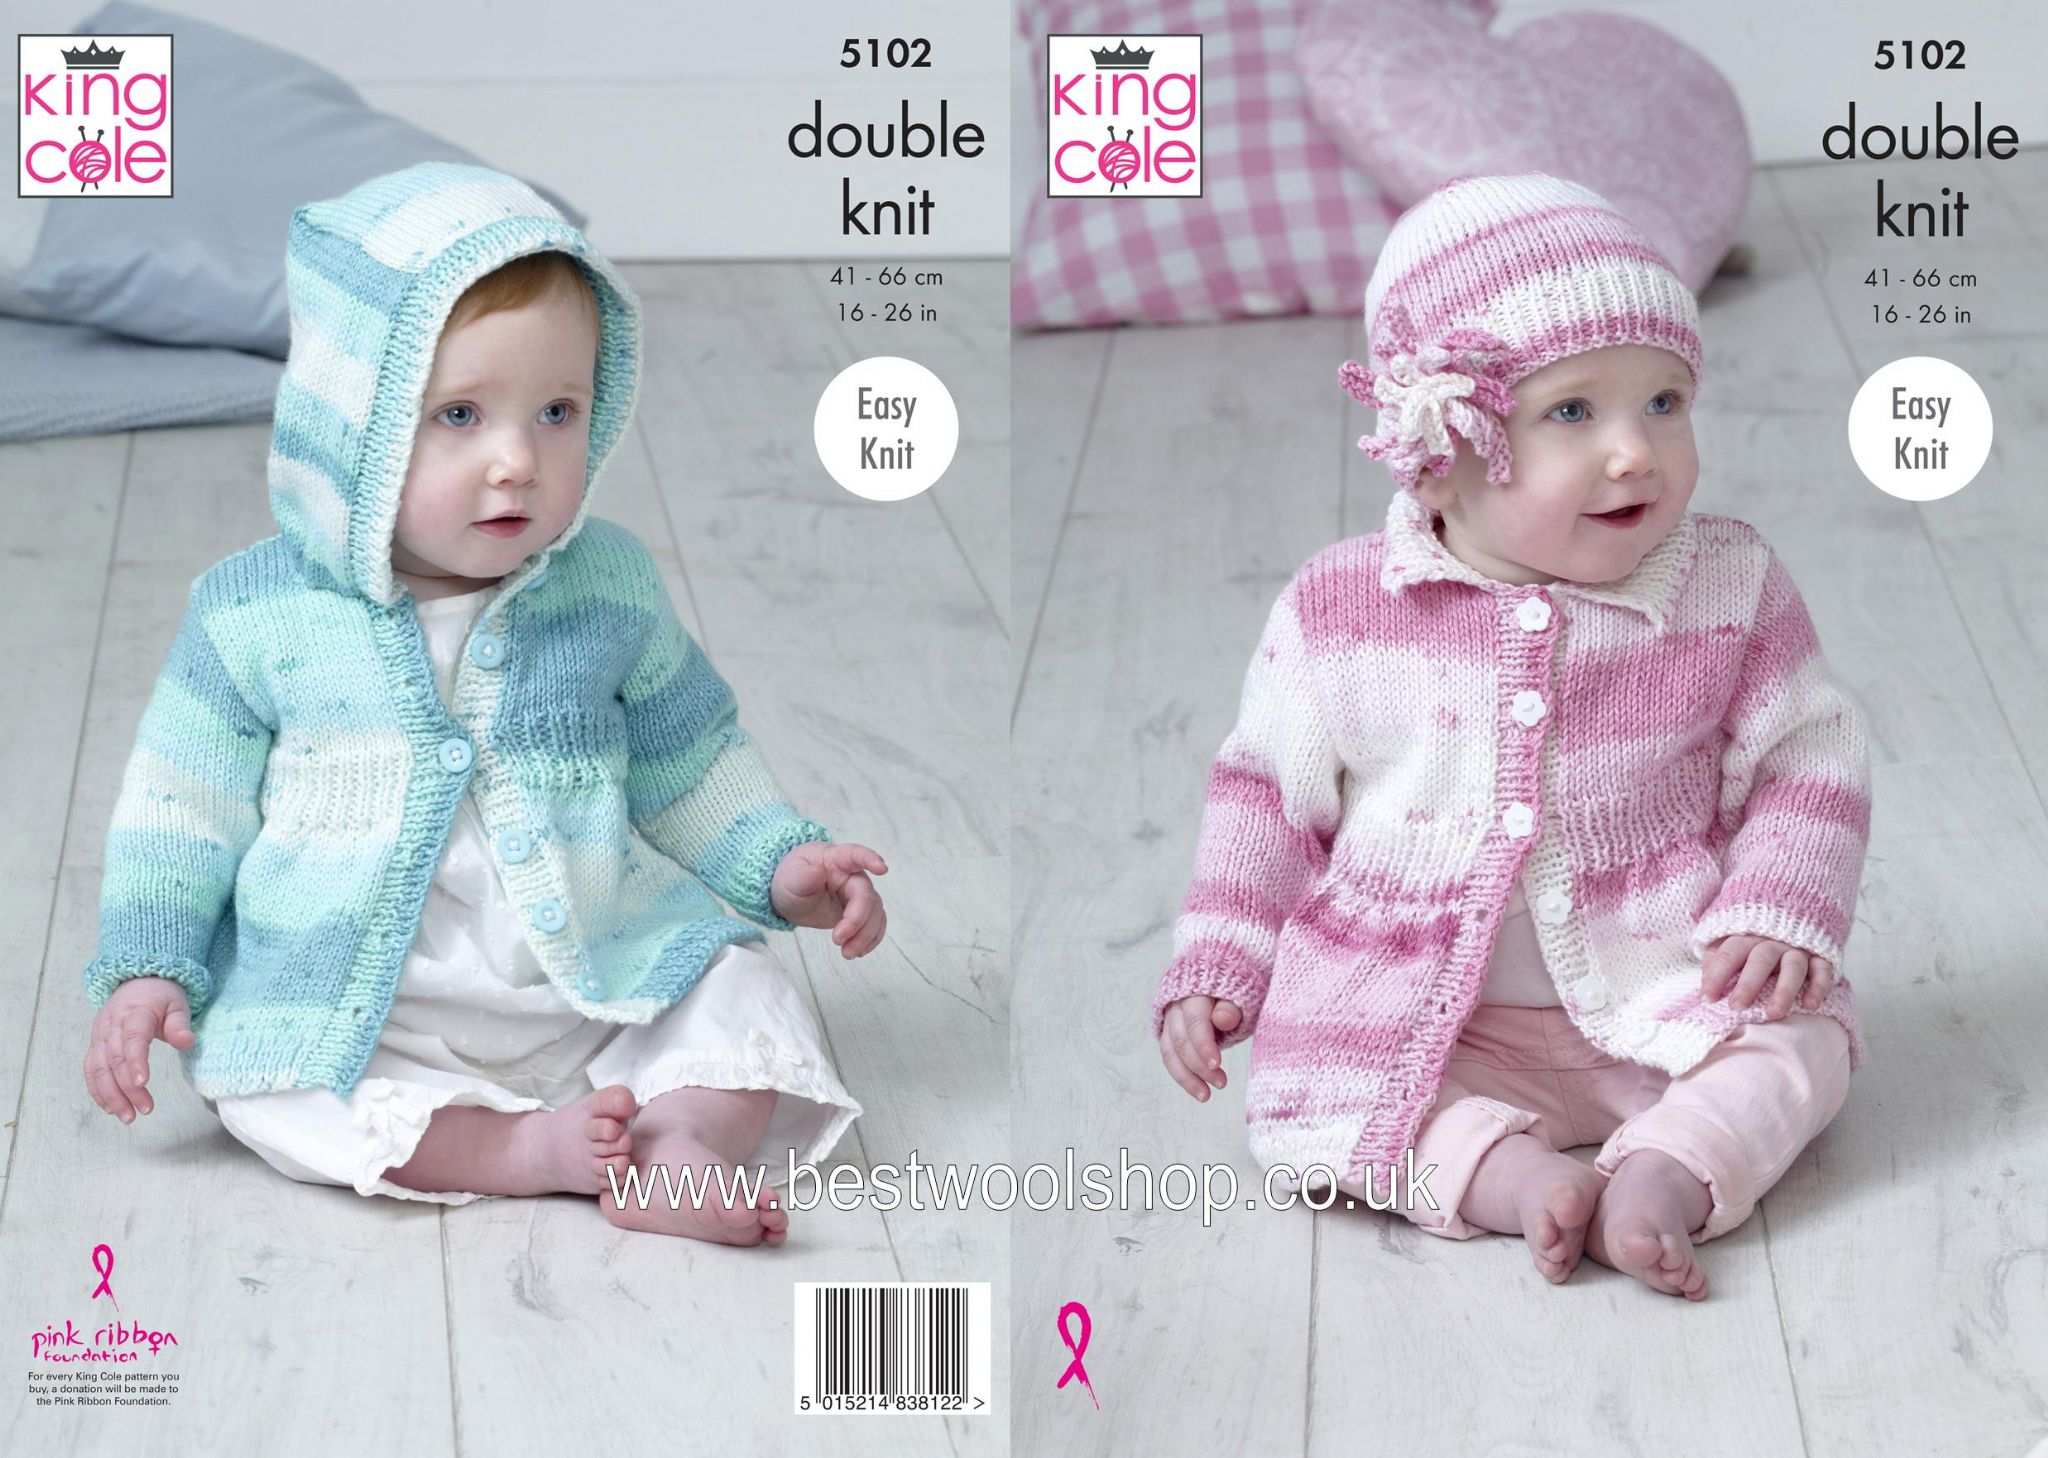 401876510 5102-king-cole-cottonsoft-baby-crush-dk-cardigan-hat-hooded-jacket-knitting- pattern-0-to-7-years-121867-p.jpg